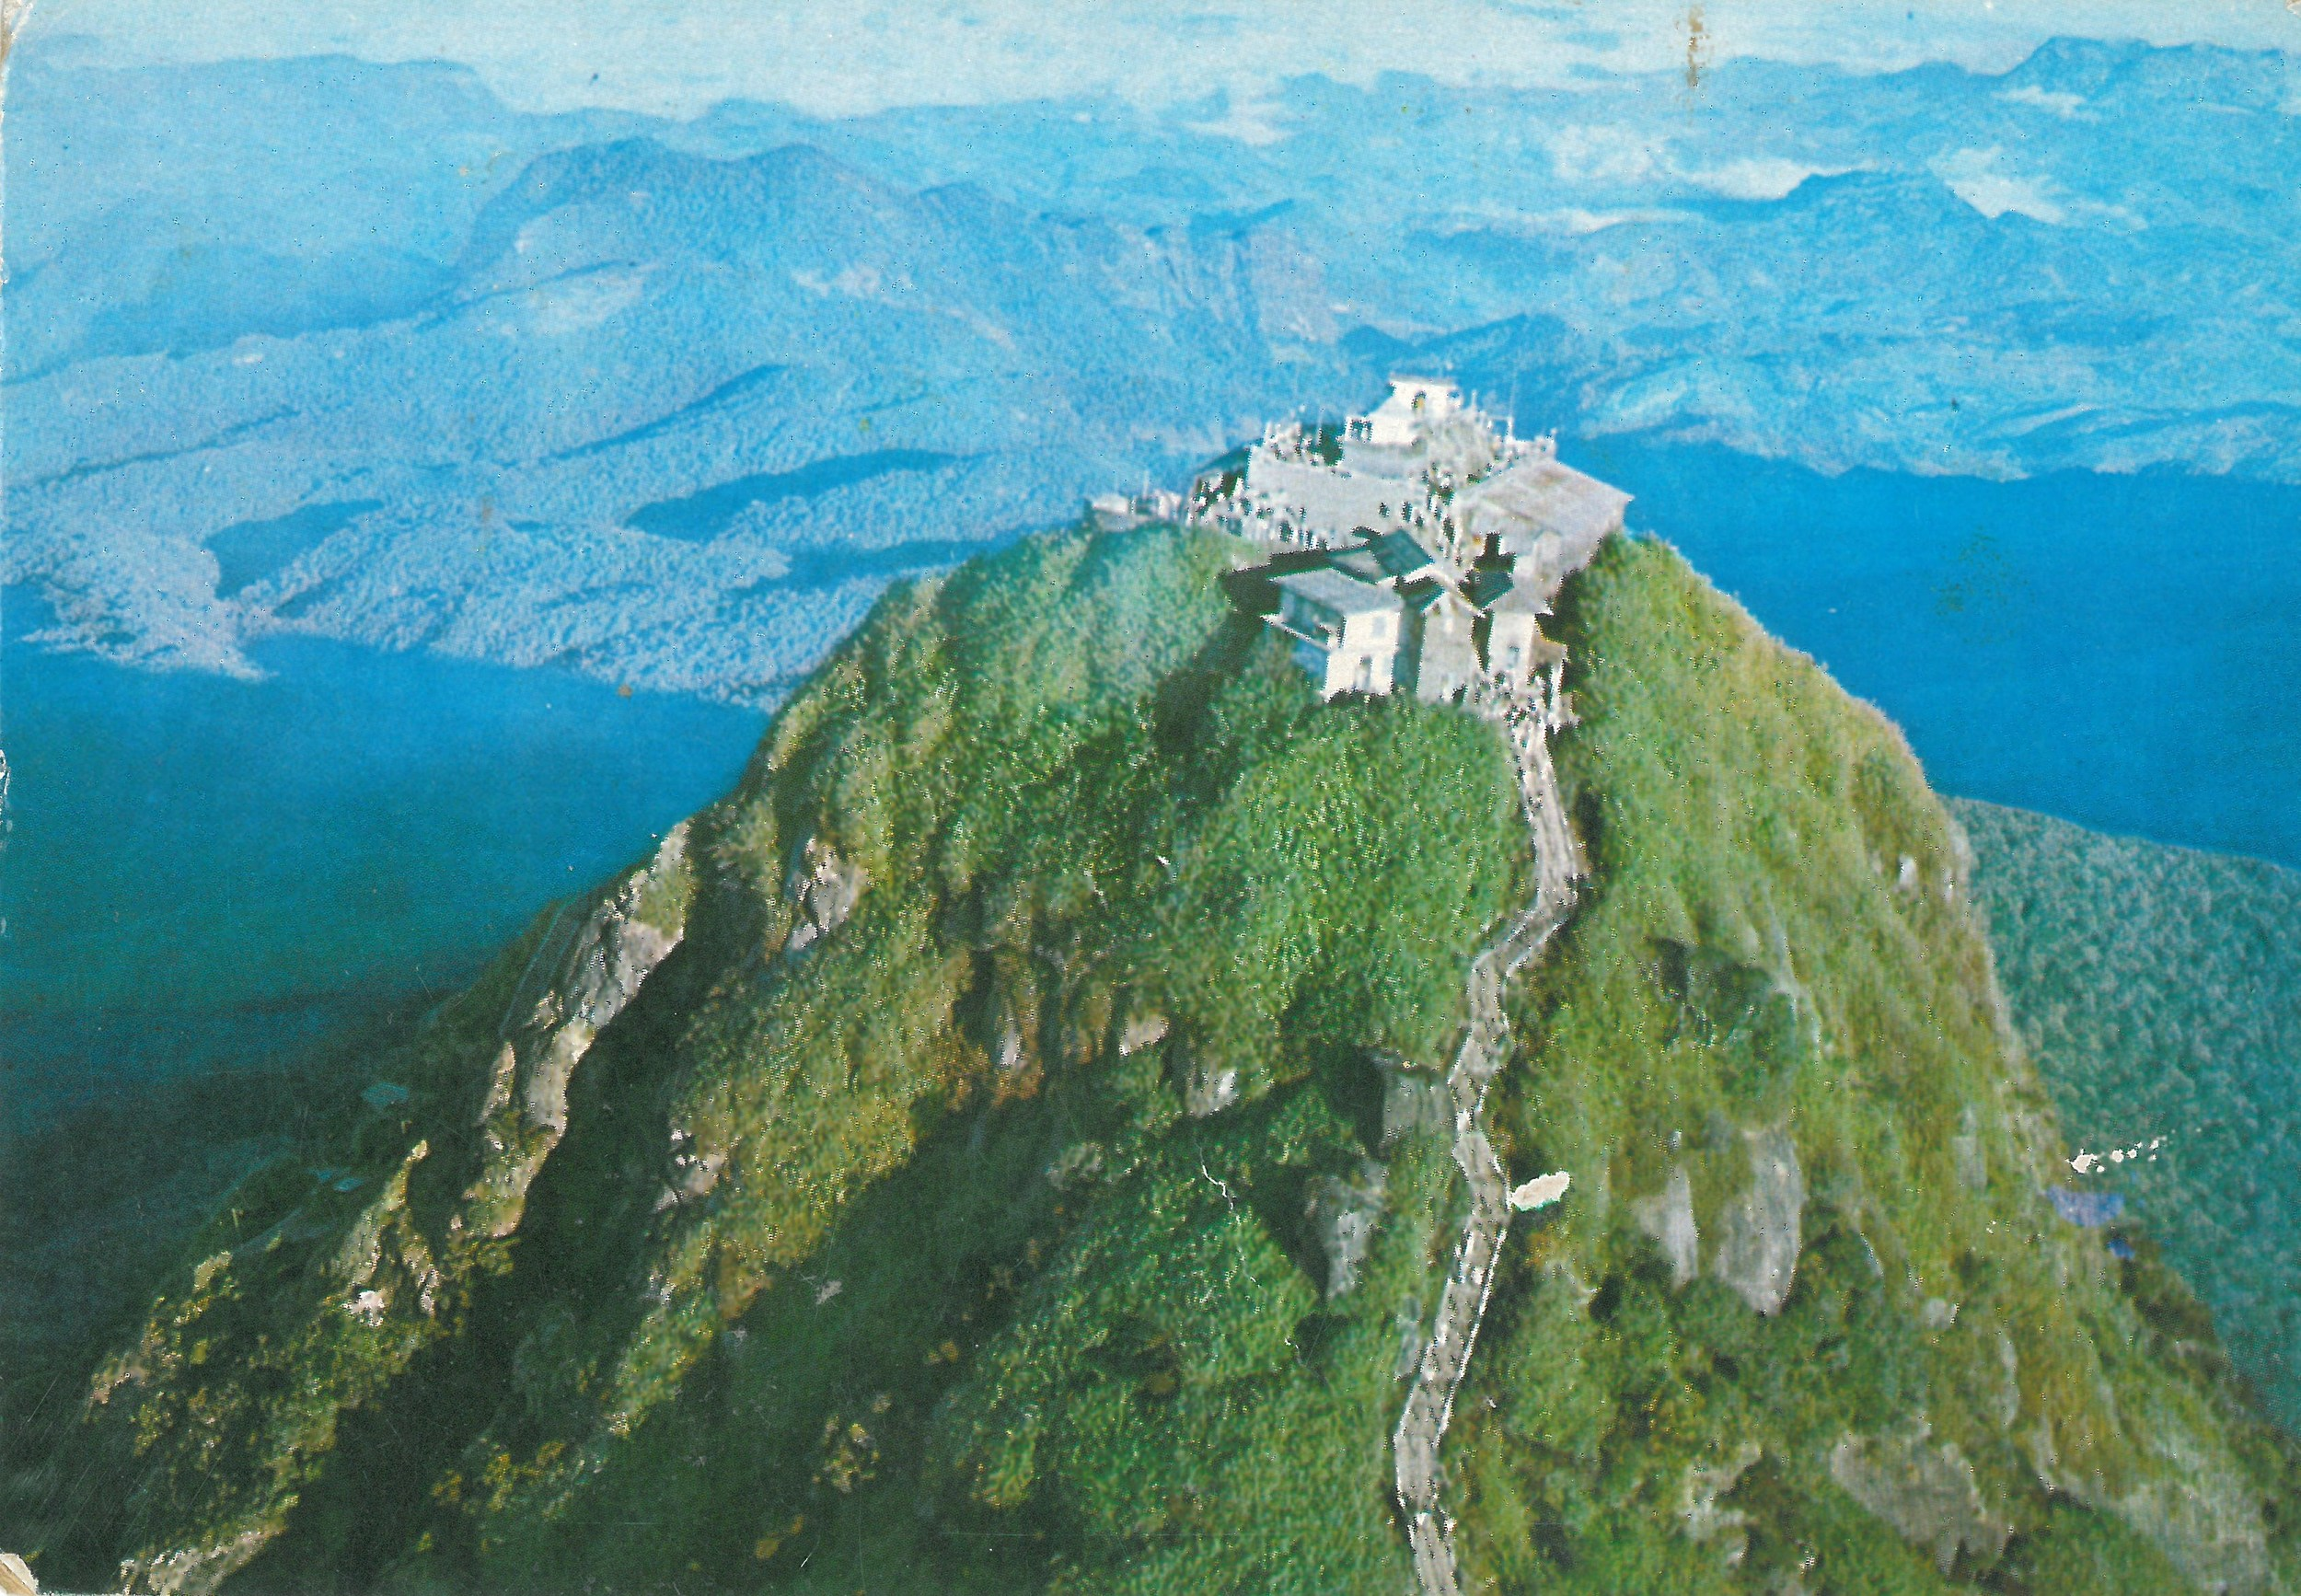 Adams Peak in Sri Lanka - a religious pilgrimage site containing Buddha's footprint, also the country's highest mountain